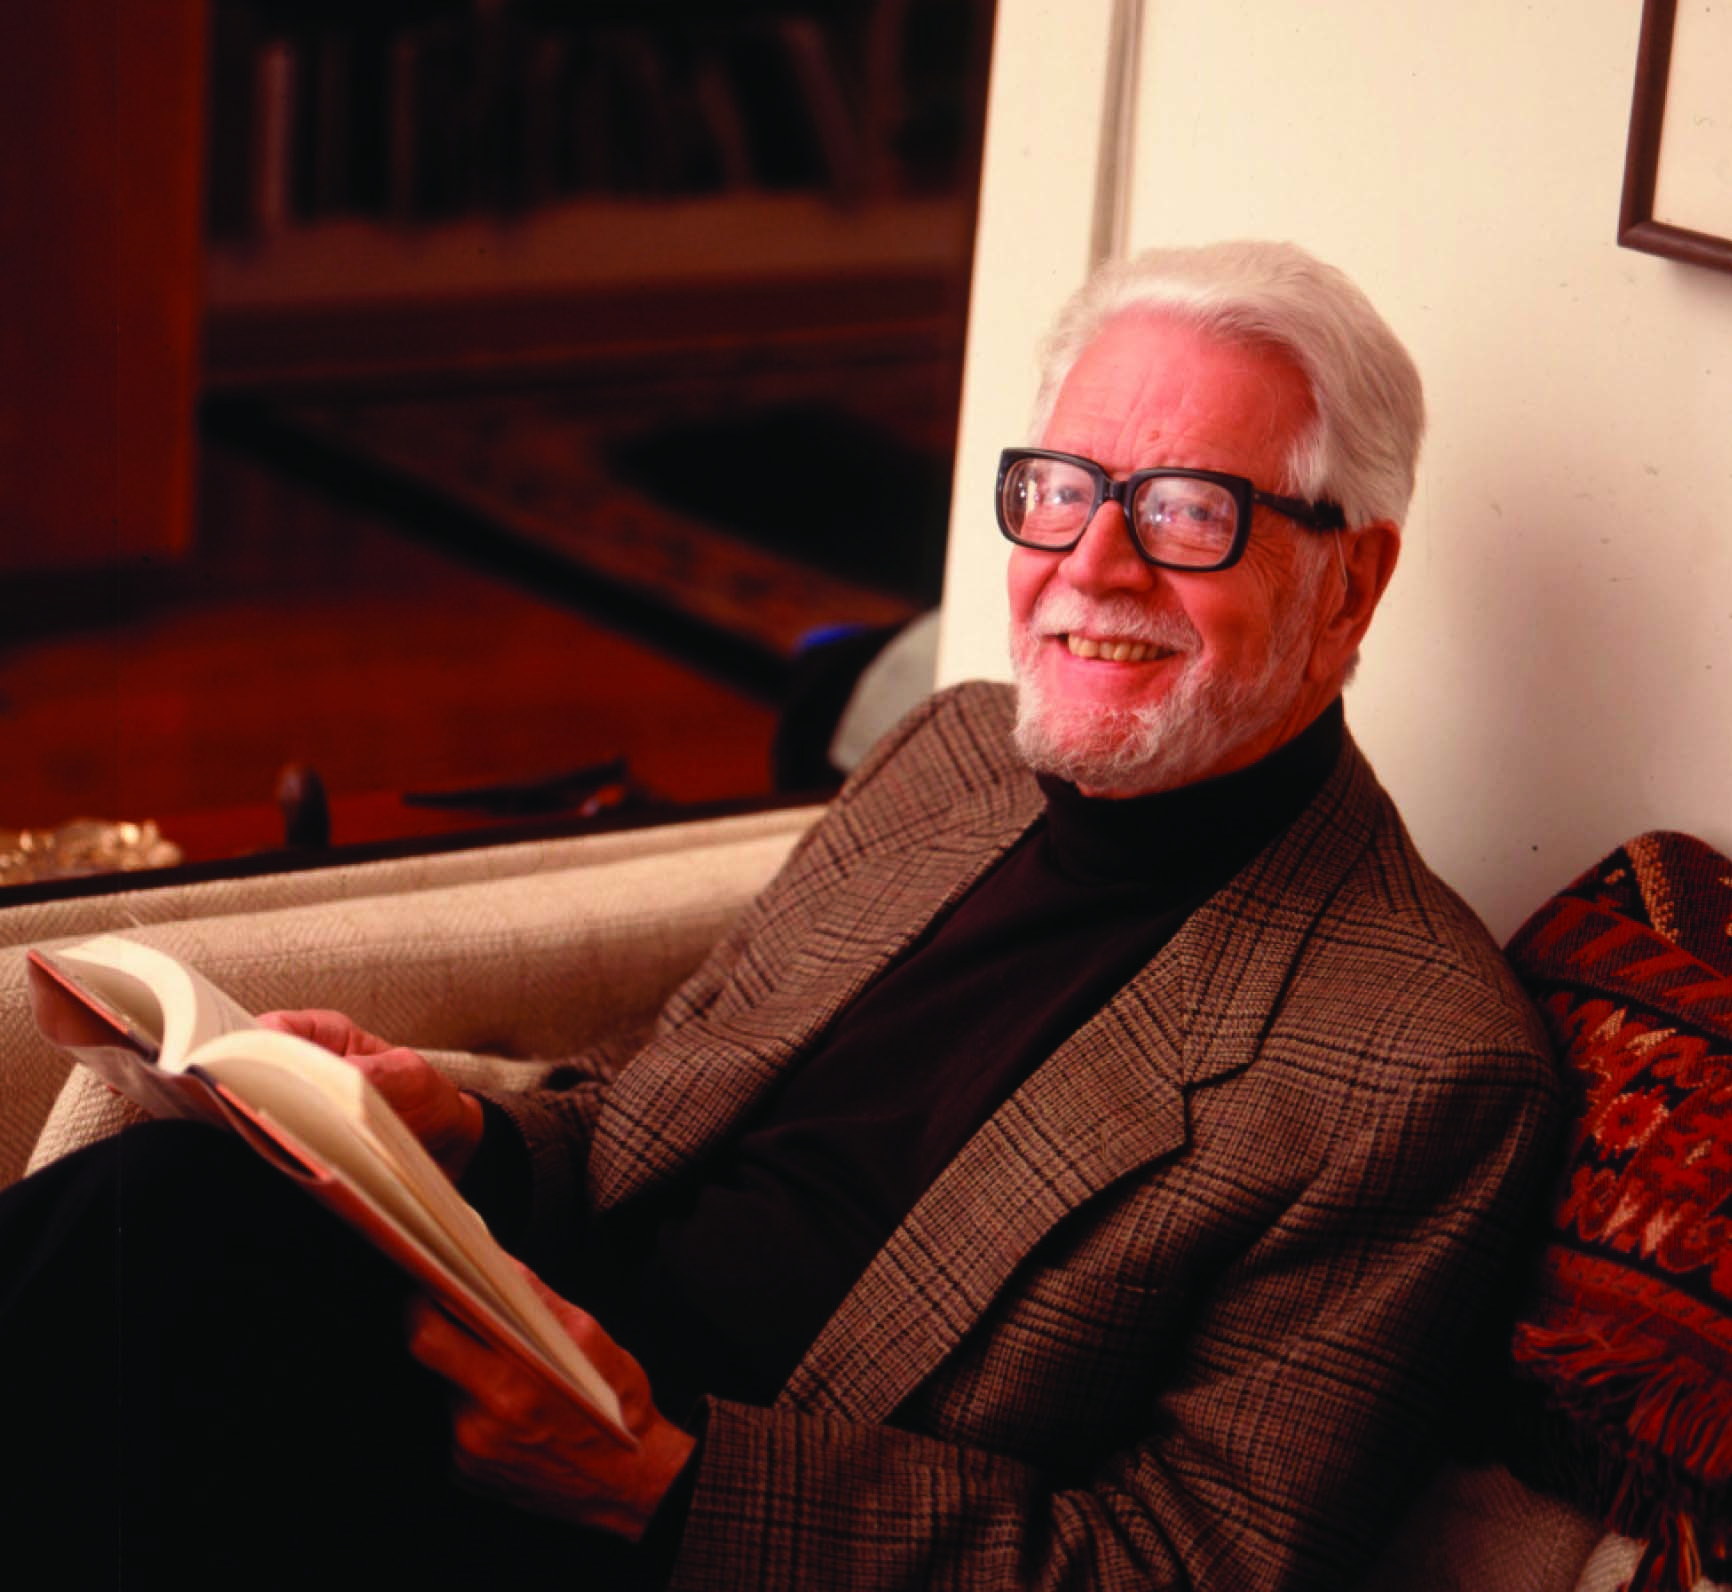 """Celebrate Wayne Booth's 100th with an Excerpt from """"The Rhetoric of Fiction"""""""